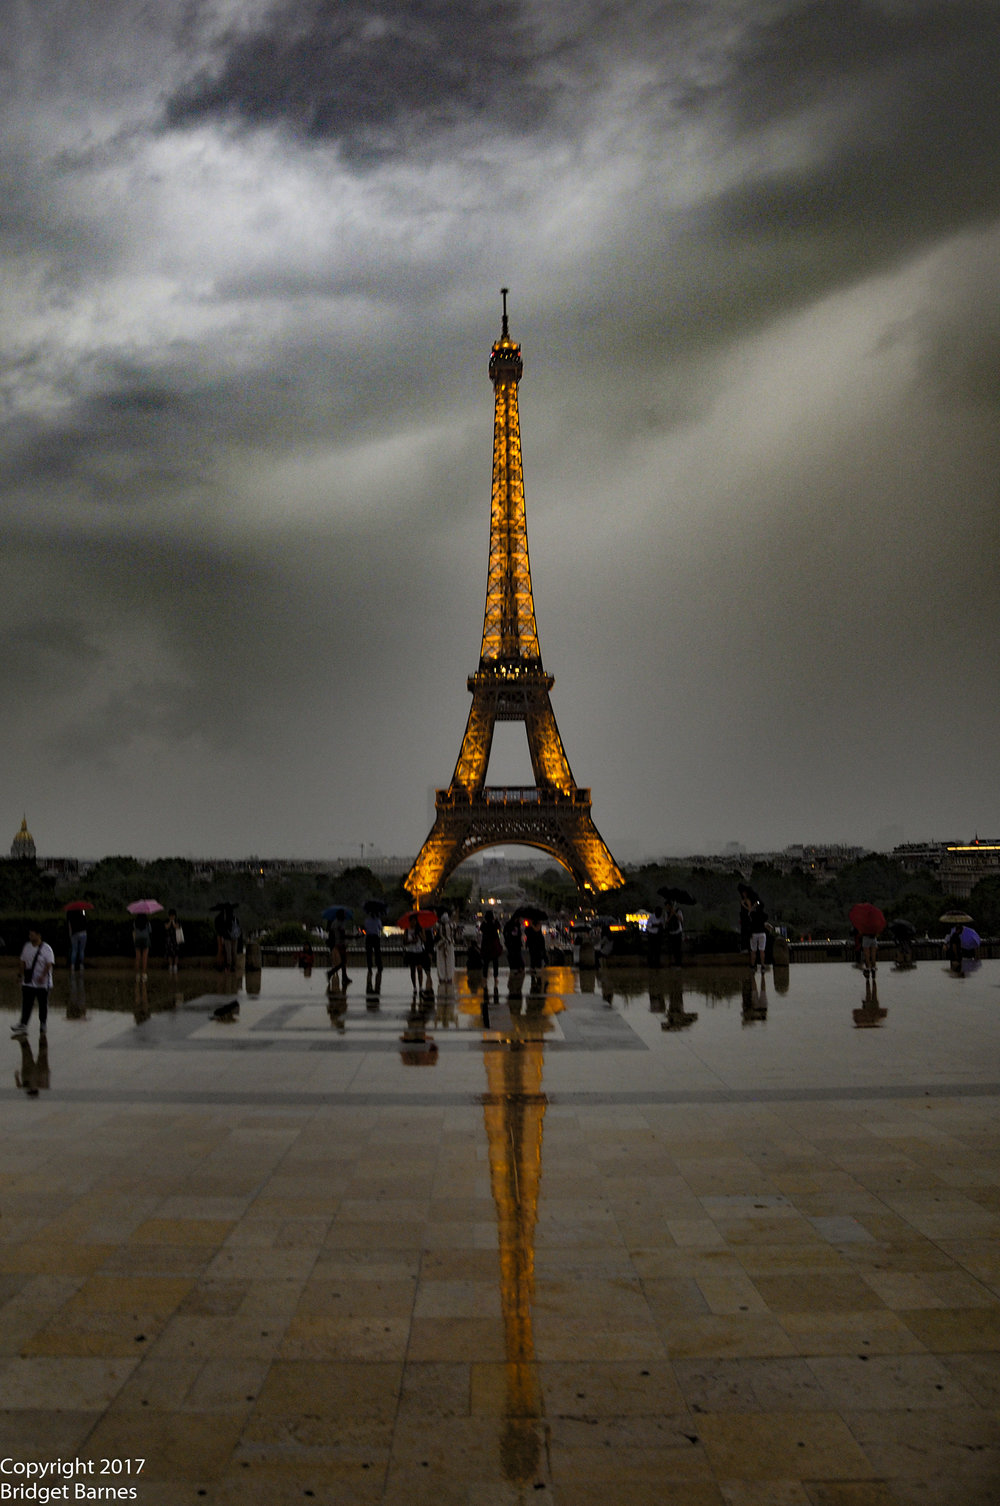 The Eiffel Tower is beautiful at all times of the day, from sunrise to after midnight, offering you twenty-four hours to take your perfect shot of the most iconic image of Paris.